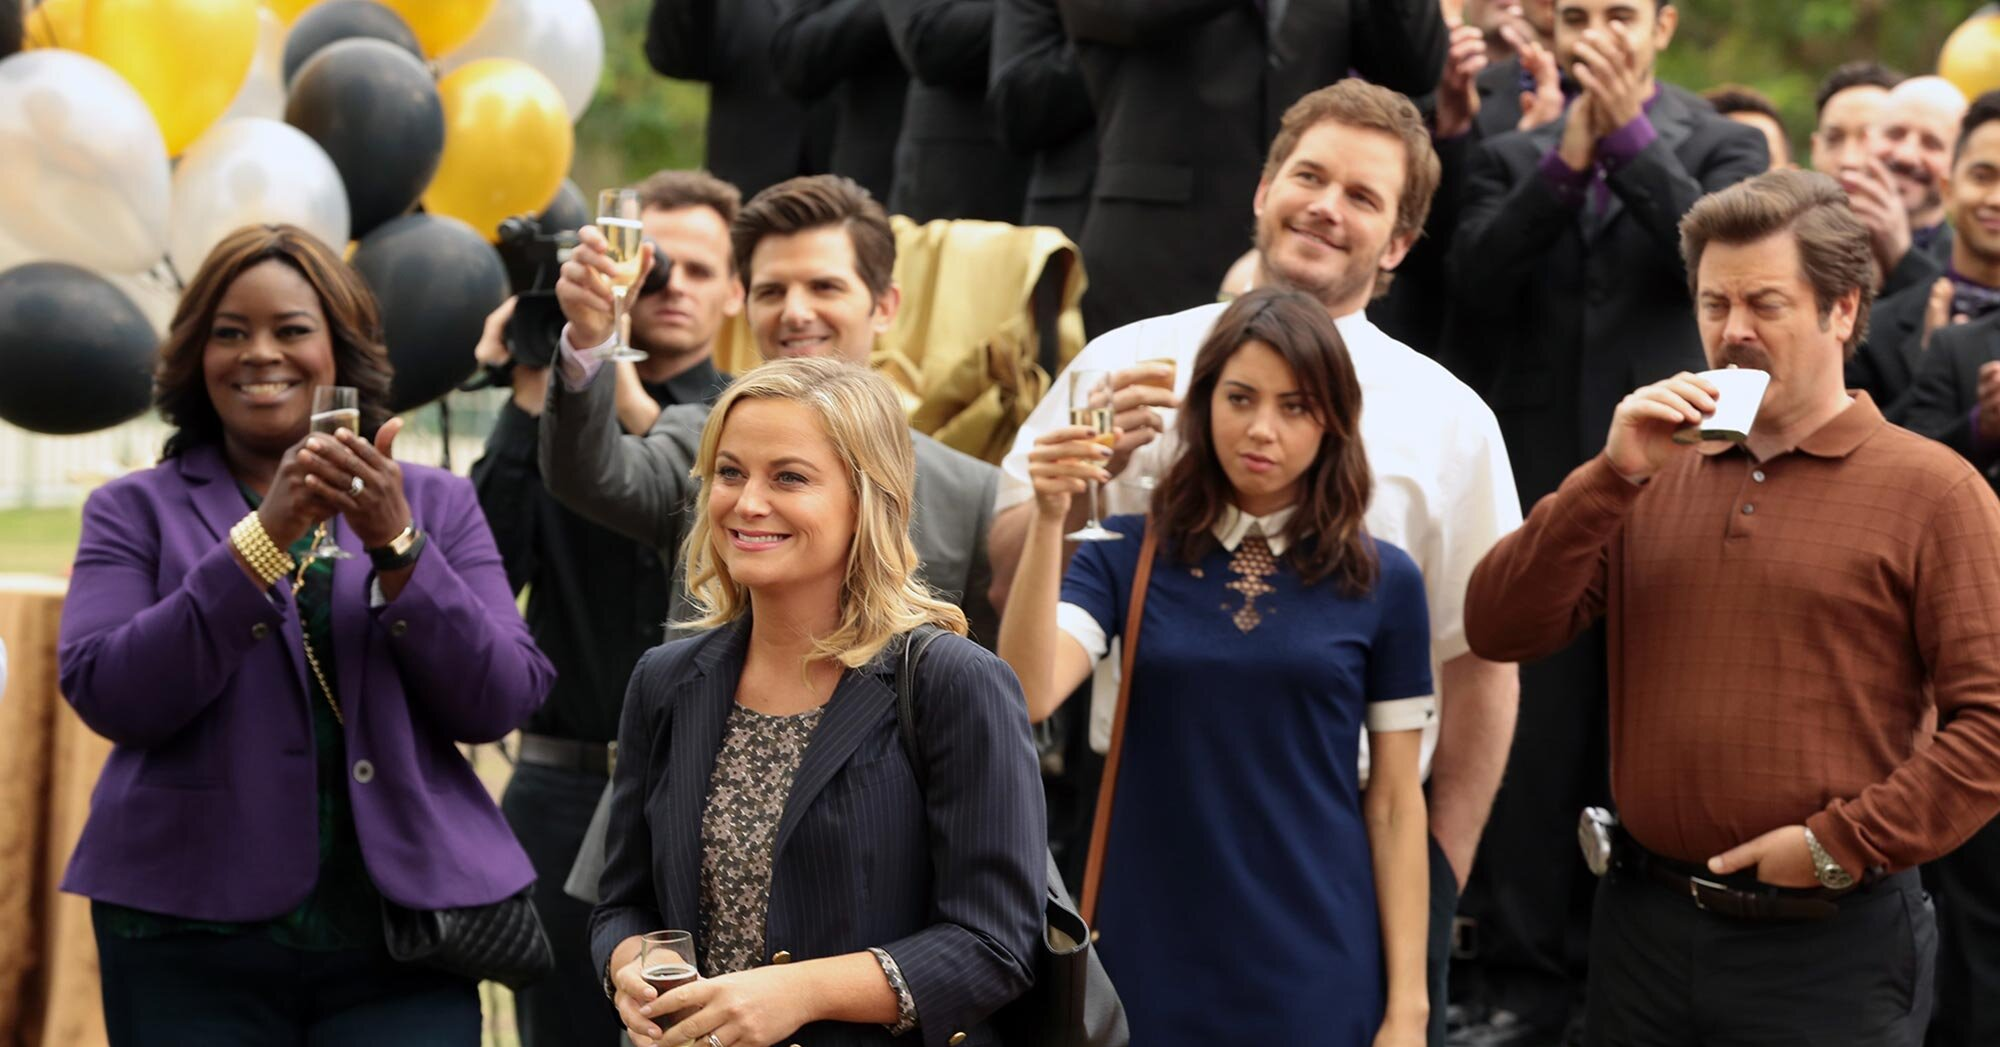 What to Watch on Thursday: Parks and Rec cast reunites for a special quarantine episode